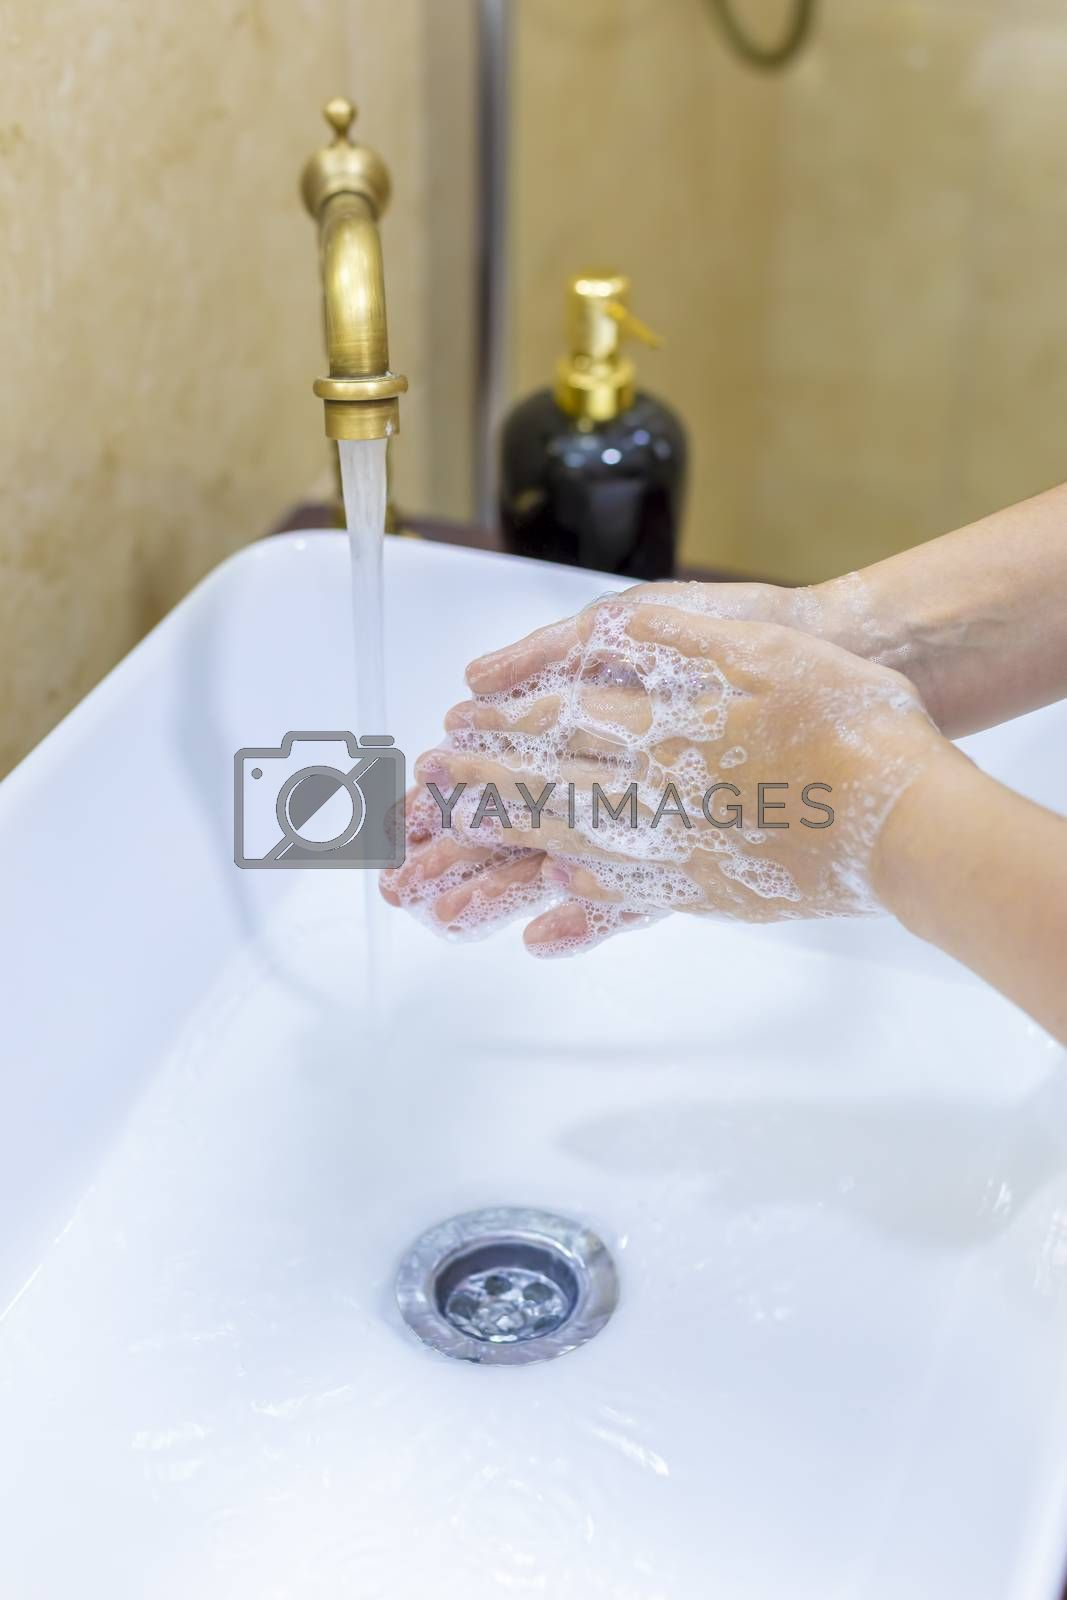 Woman washing and disinfecting hands with soap and hot water as part of coronavirus prevention and protection protocols; stop spreading covid-19 hygiene protocols. Focus on her finger.